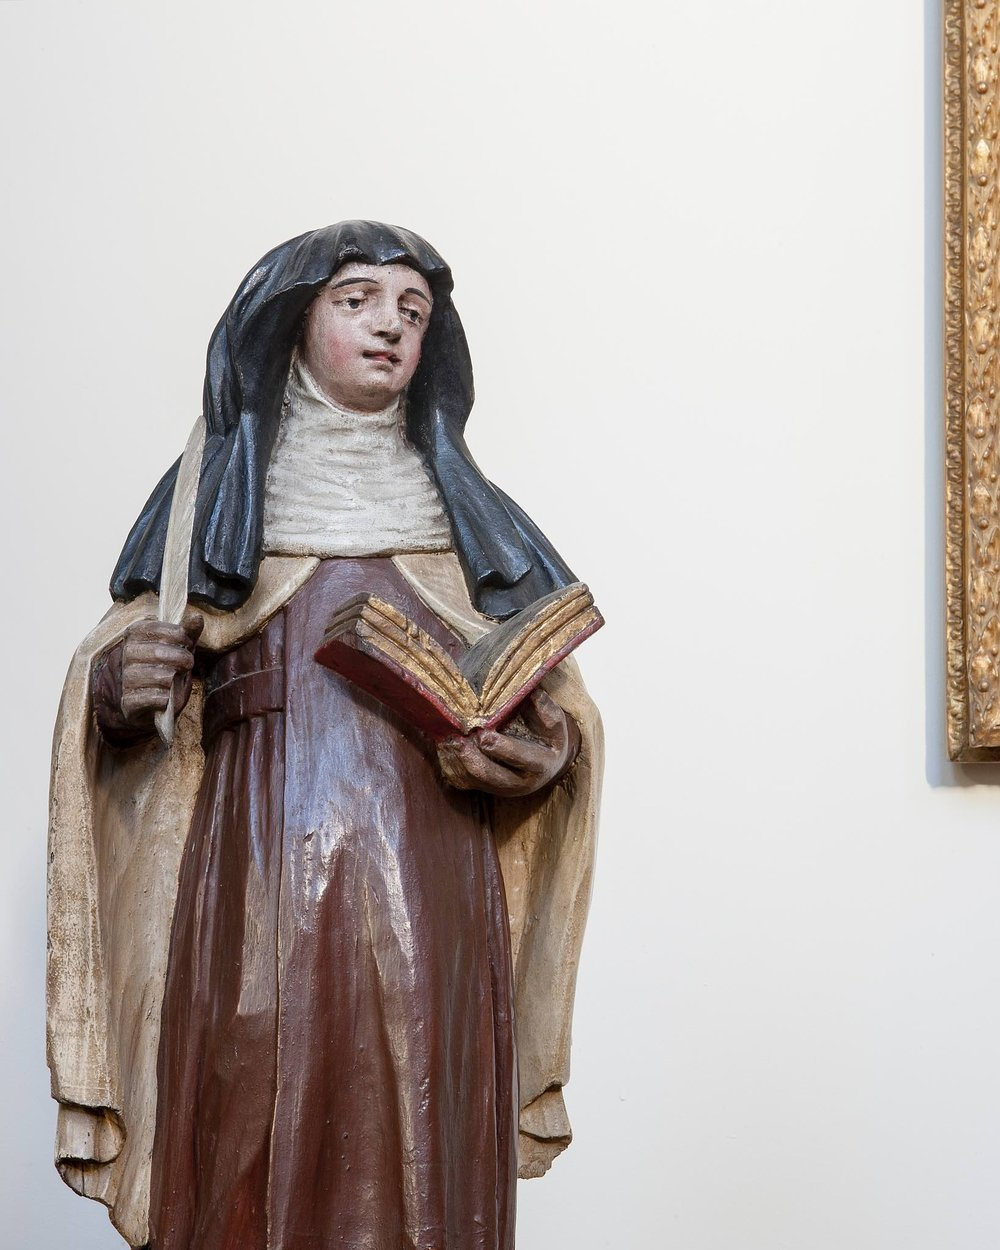 St. Teresa of Avila - Born at Avila in 1515, she entered the Carmelite order in 1535. During the course of a serious illness the following year, she developed the habit of mental prayer and underwent mystical experiences.  She was responsible for reform of the Carmelite order, and her writings, particularly her distinctive contribution to mystical theology, led to her being named a Doctor of the Church by Pope Paul VI in 1970.  She died in 1582 and her feast day is October 15th.